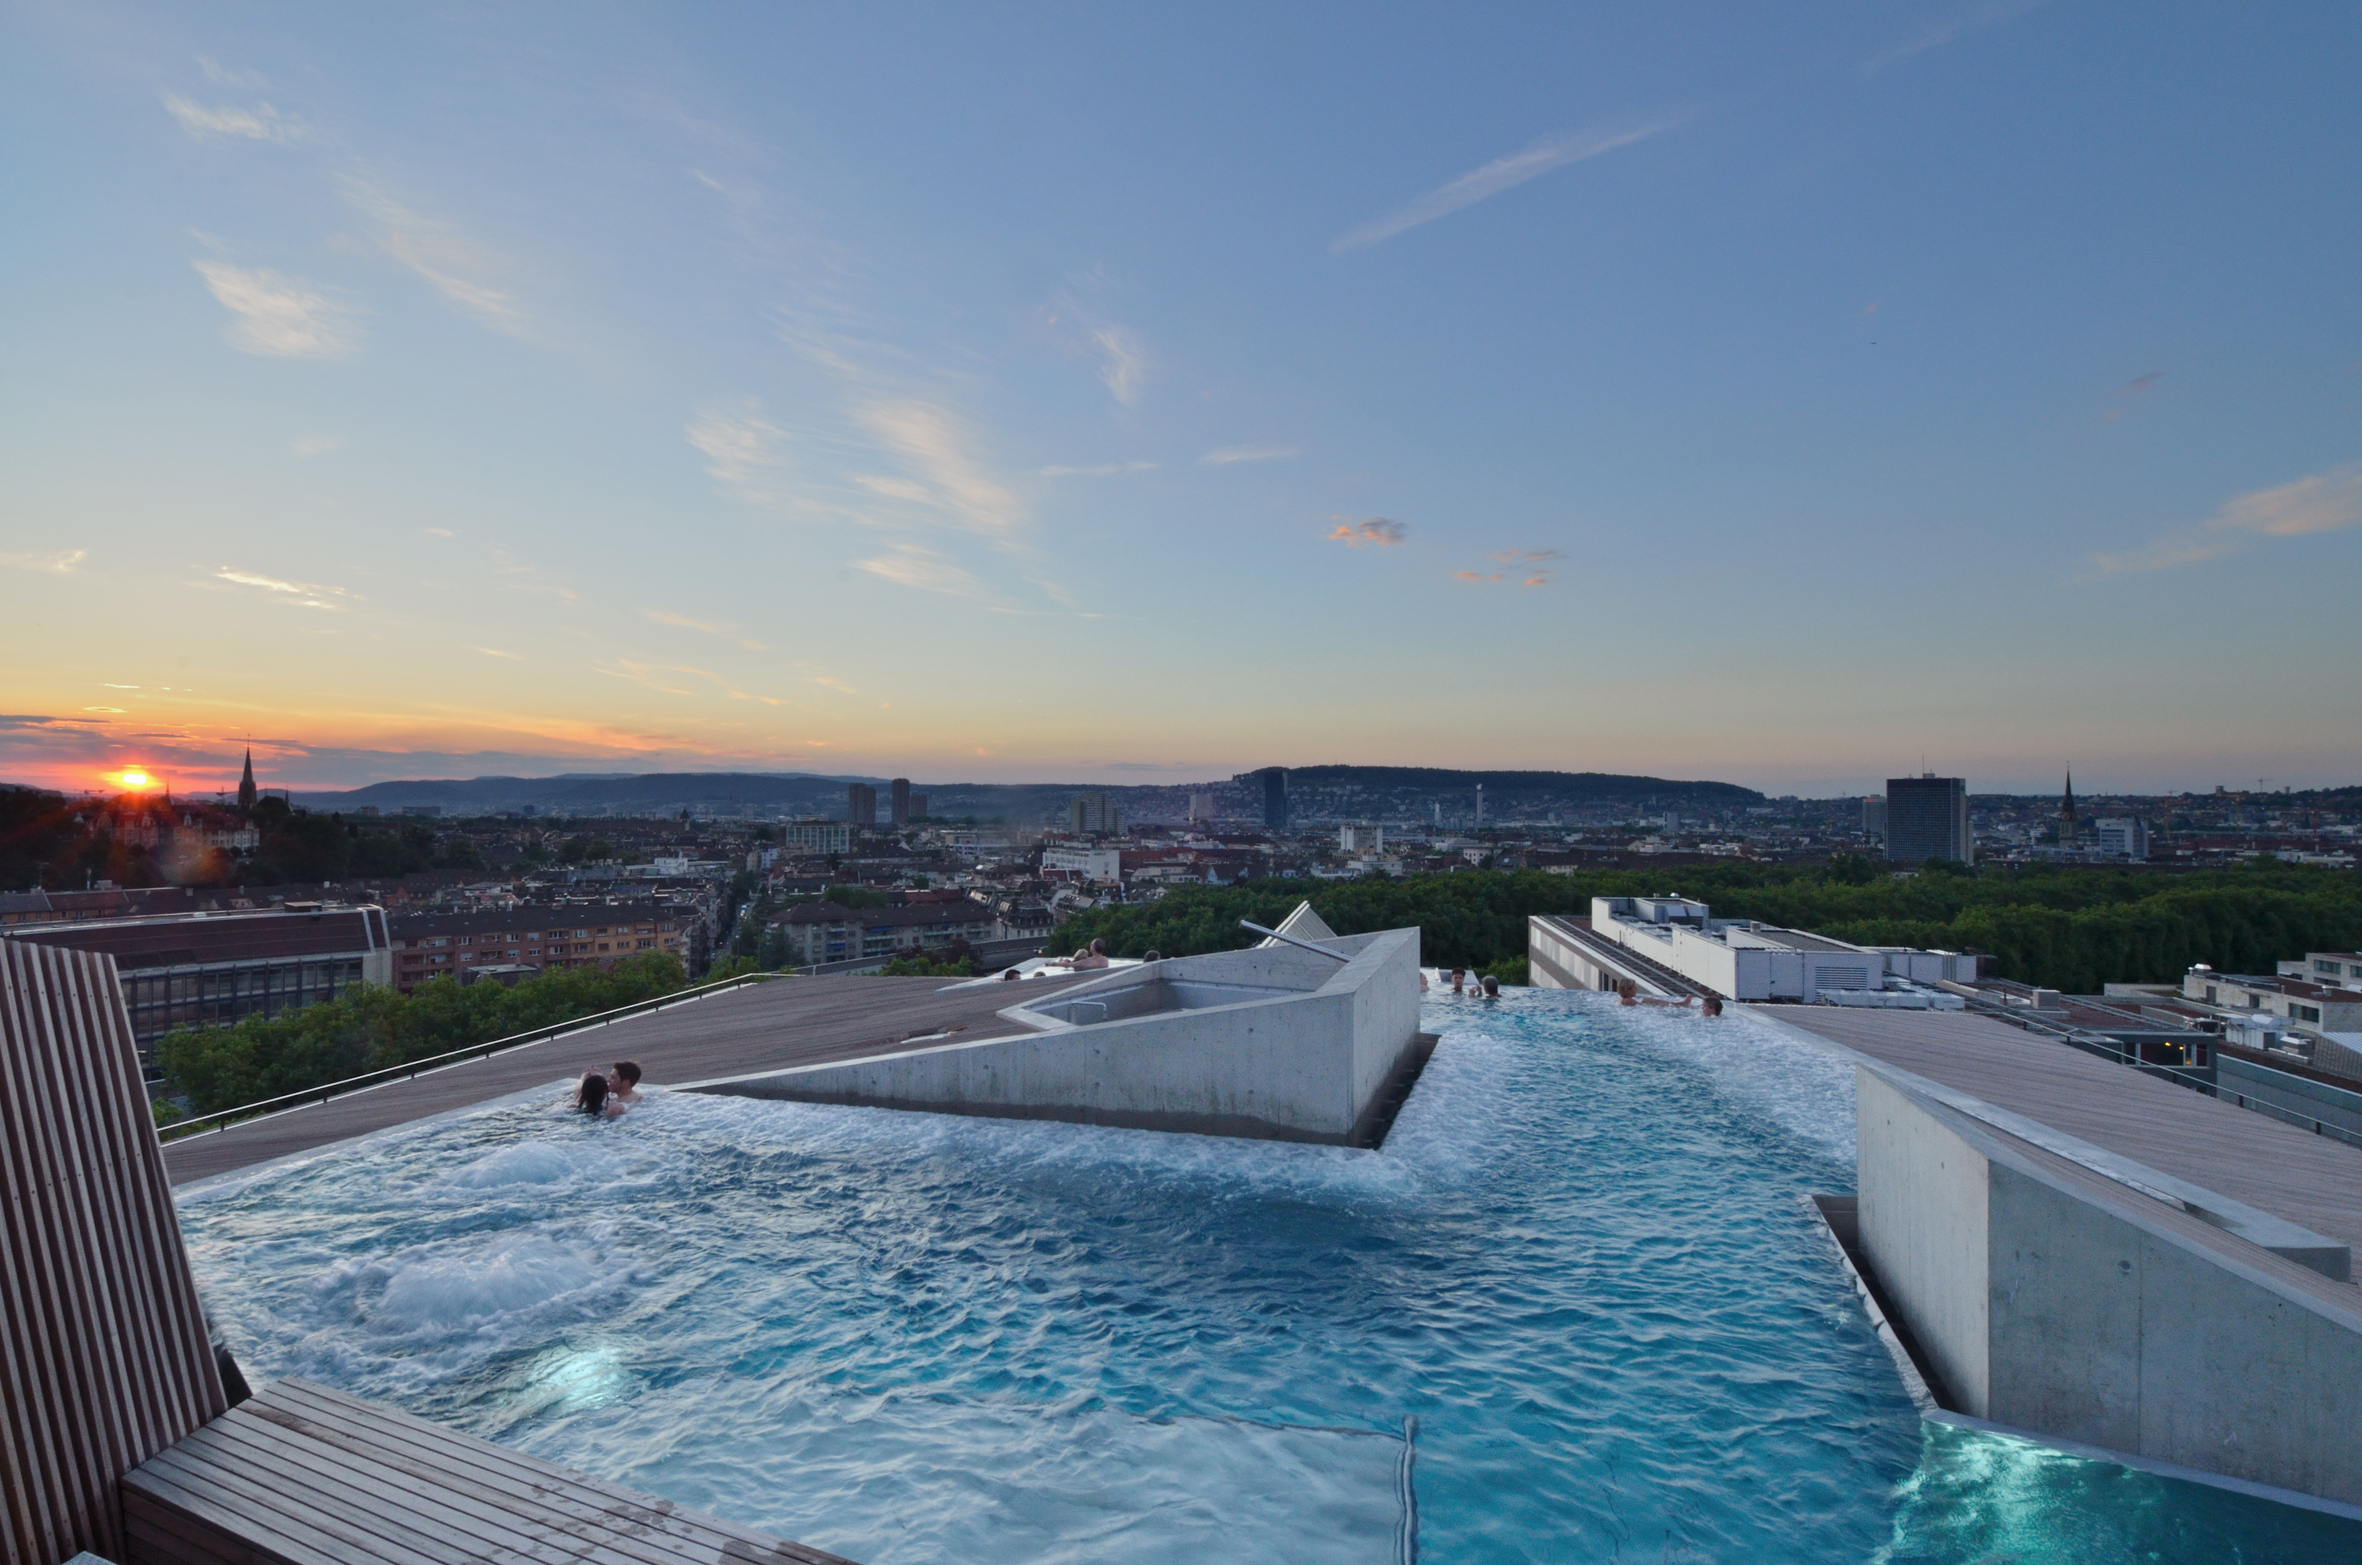 Thermalbad Spa Zurich Wellness Massage Rooftop Pool Hürlimann Areal